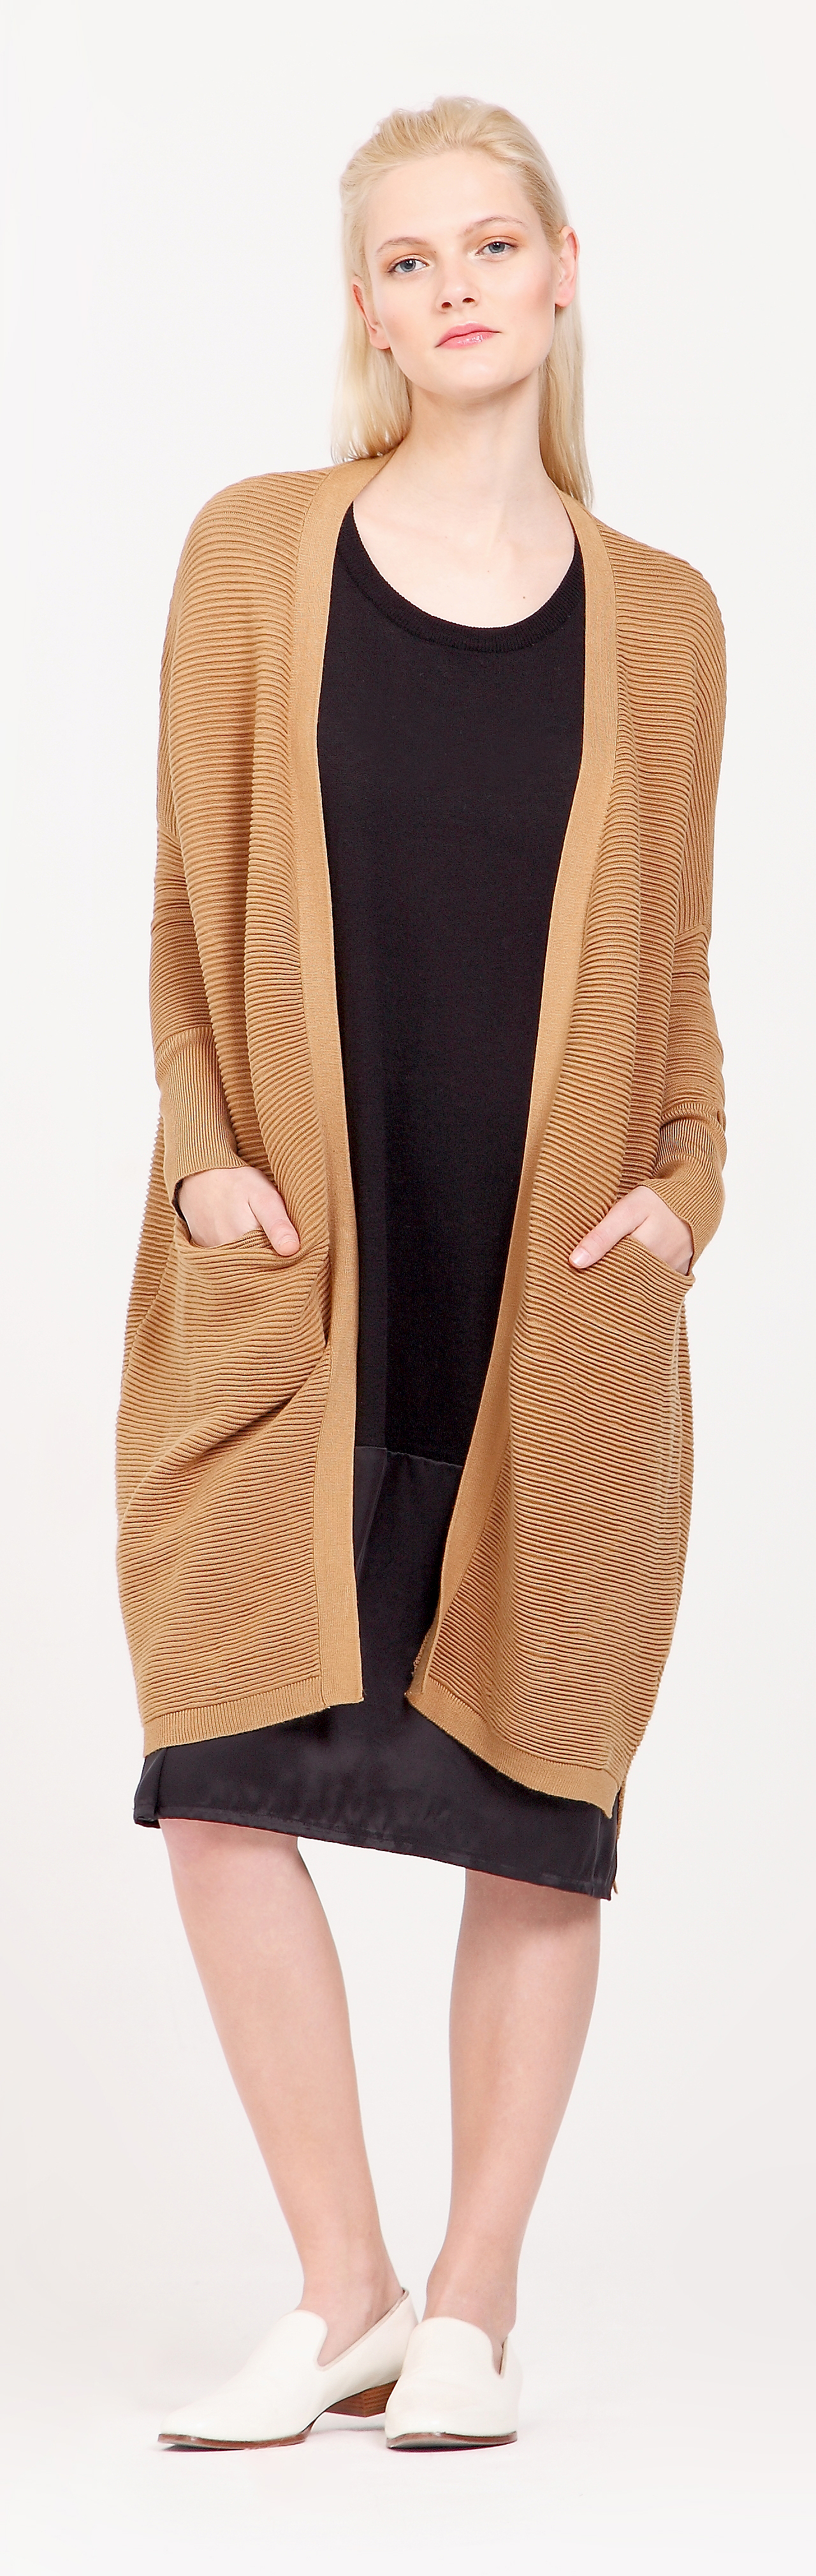 Ribbed Knee Length Cardigan in Camel | Longline cardigan, Camels ...